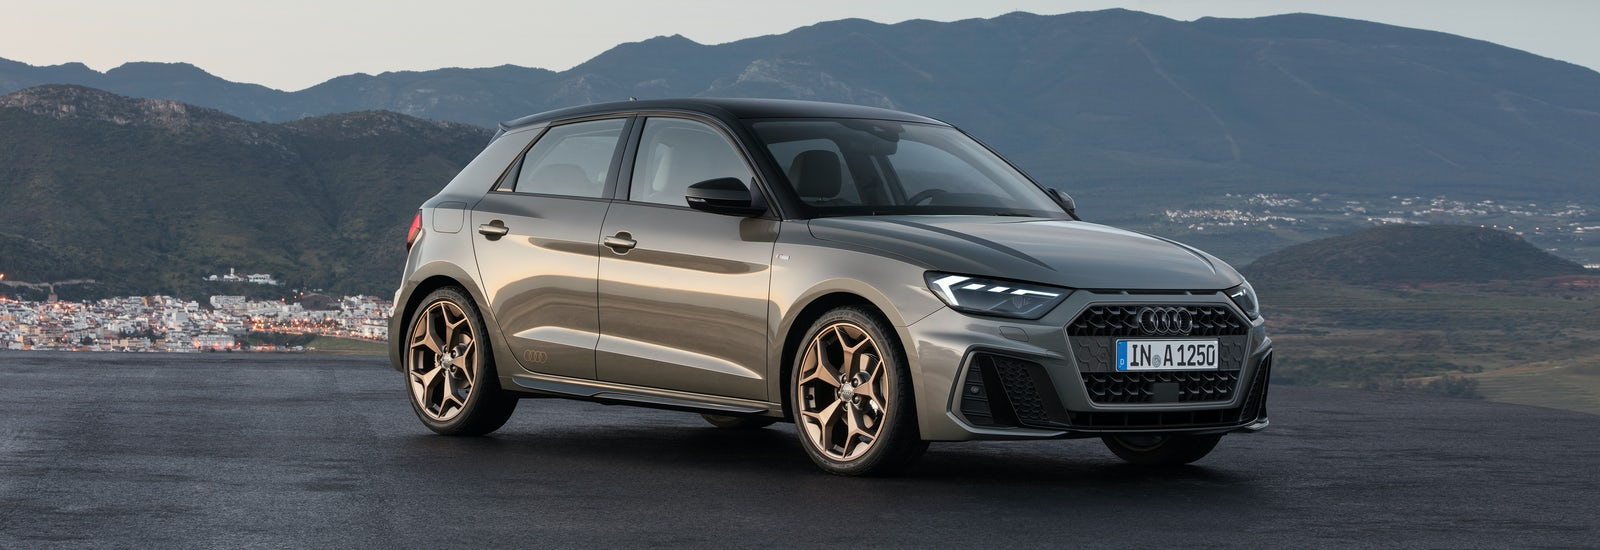 audi a1 2019 price specs and release date carwow. Black Bedroom Furniture Sets. Home Design Ideas